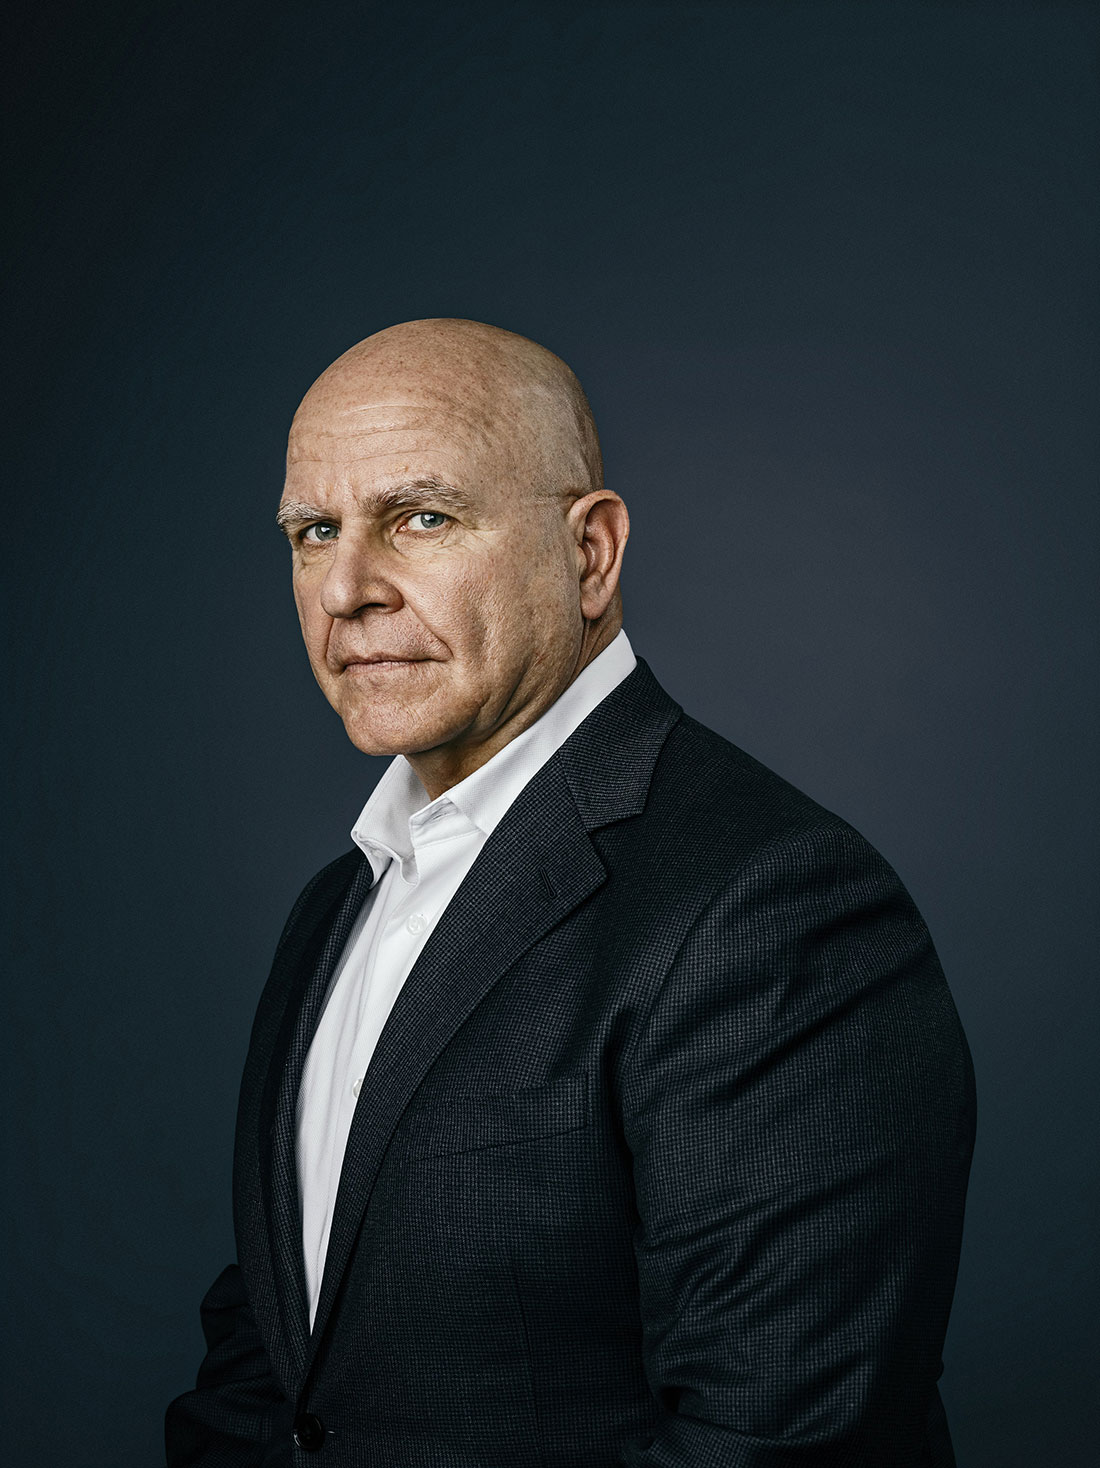 Event - A Virtual Conversation with Lt. General H.R. McMaster